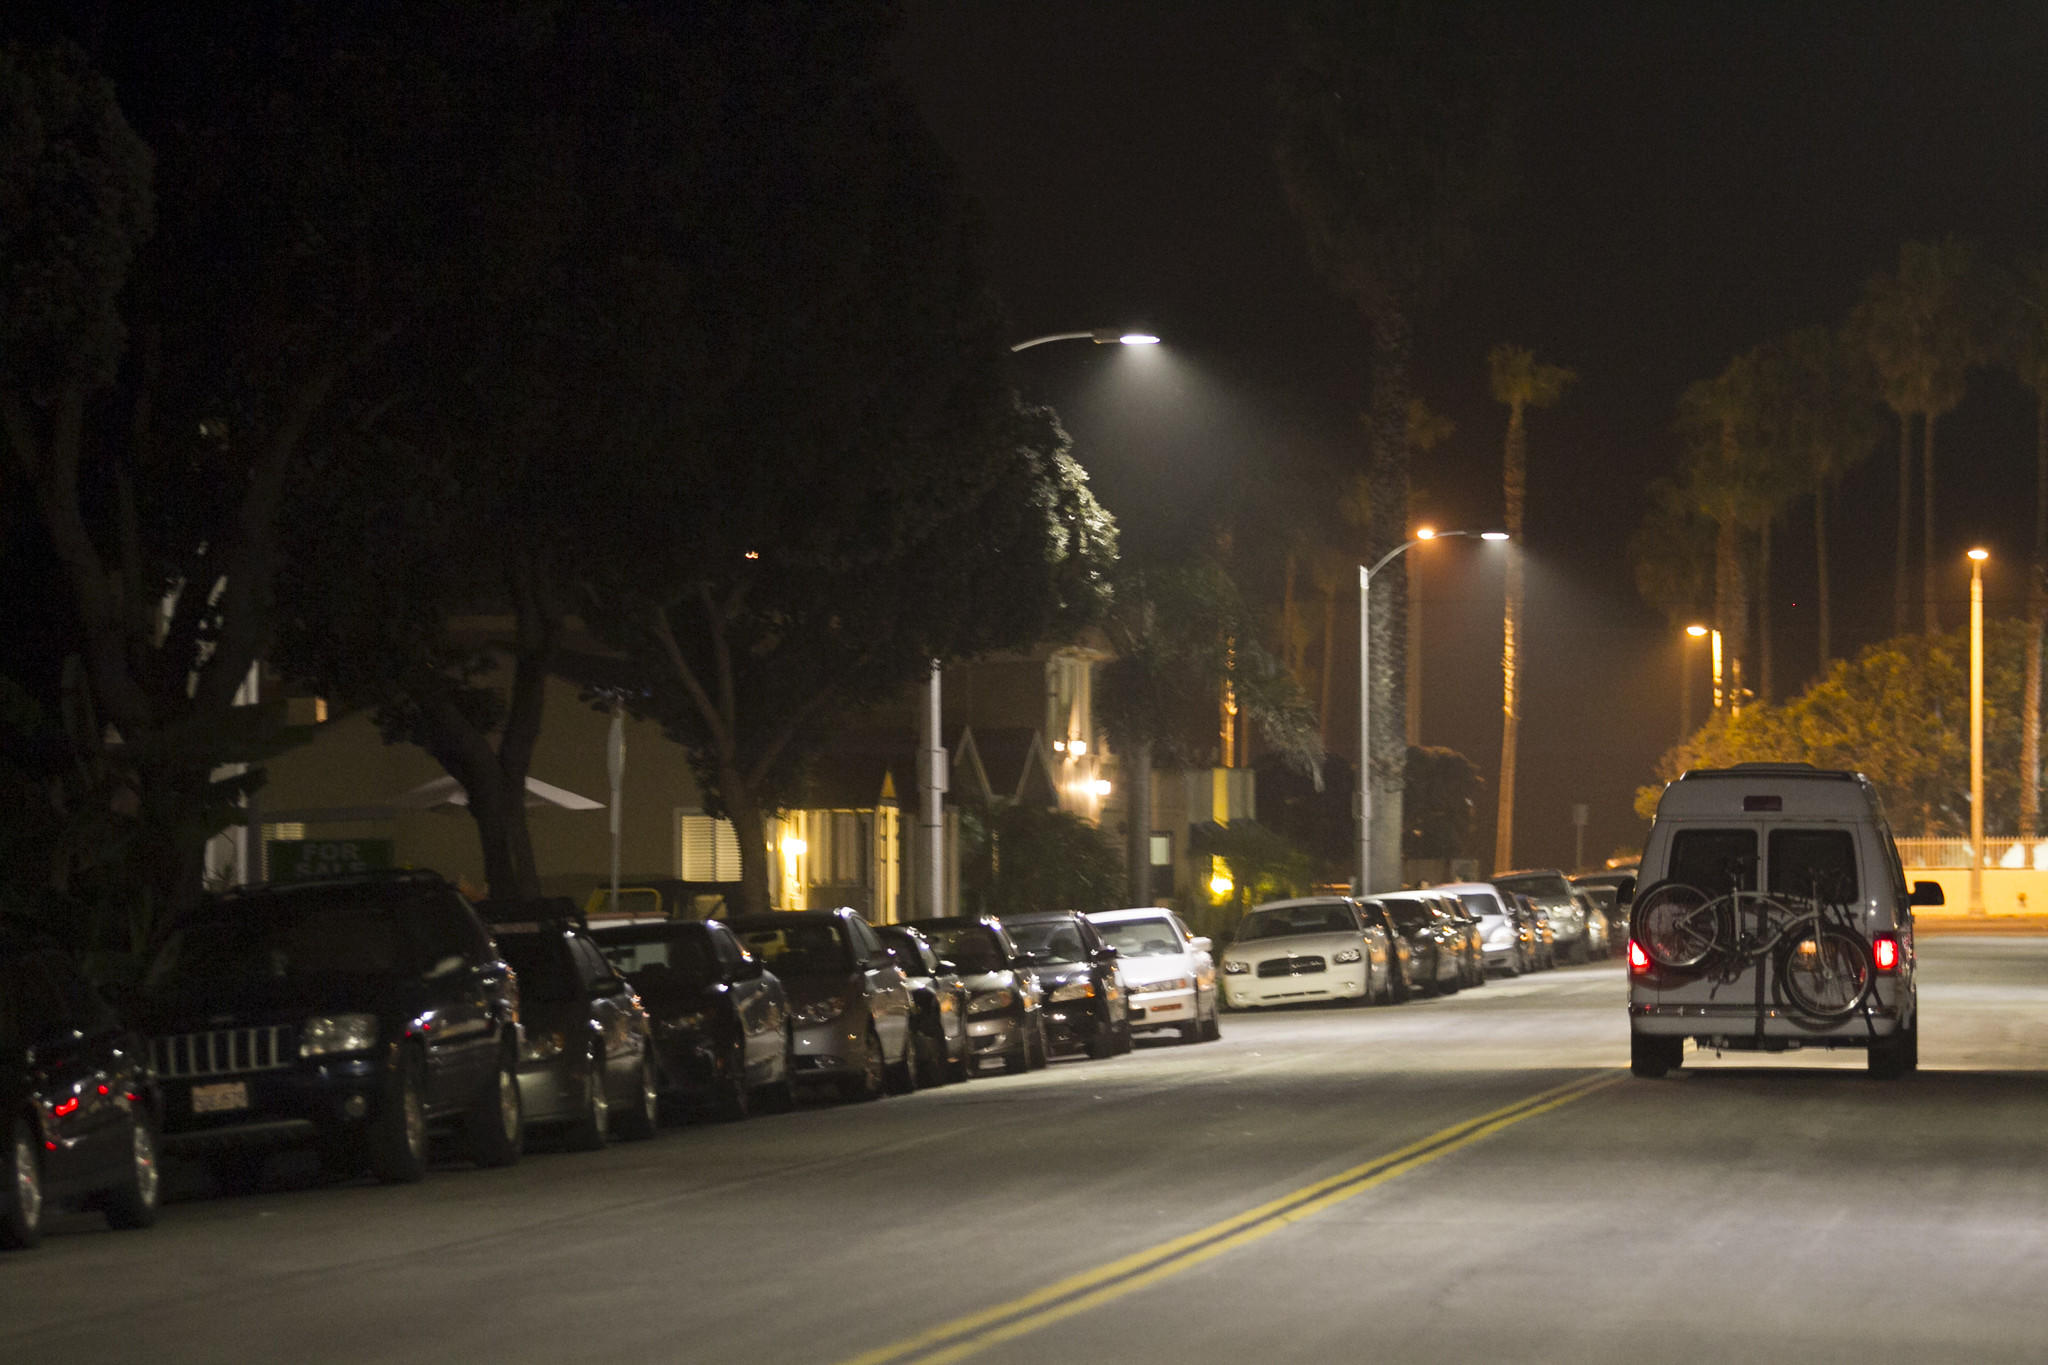 Cars line the street at Seventh Street in between Walnut and Orange avenues.